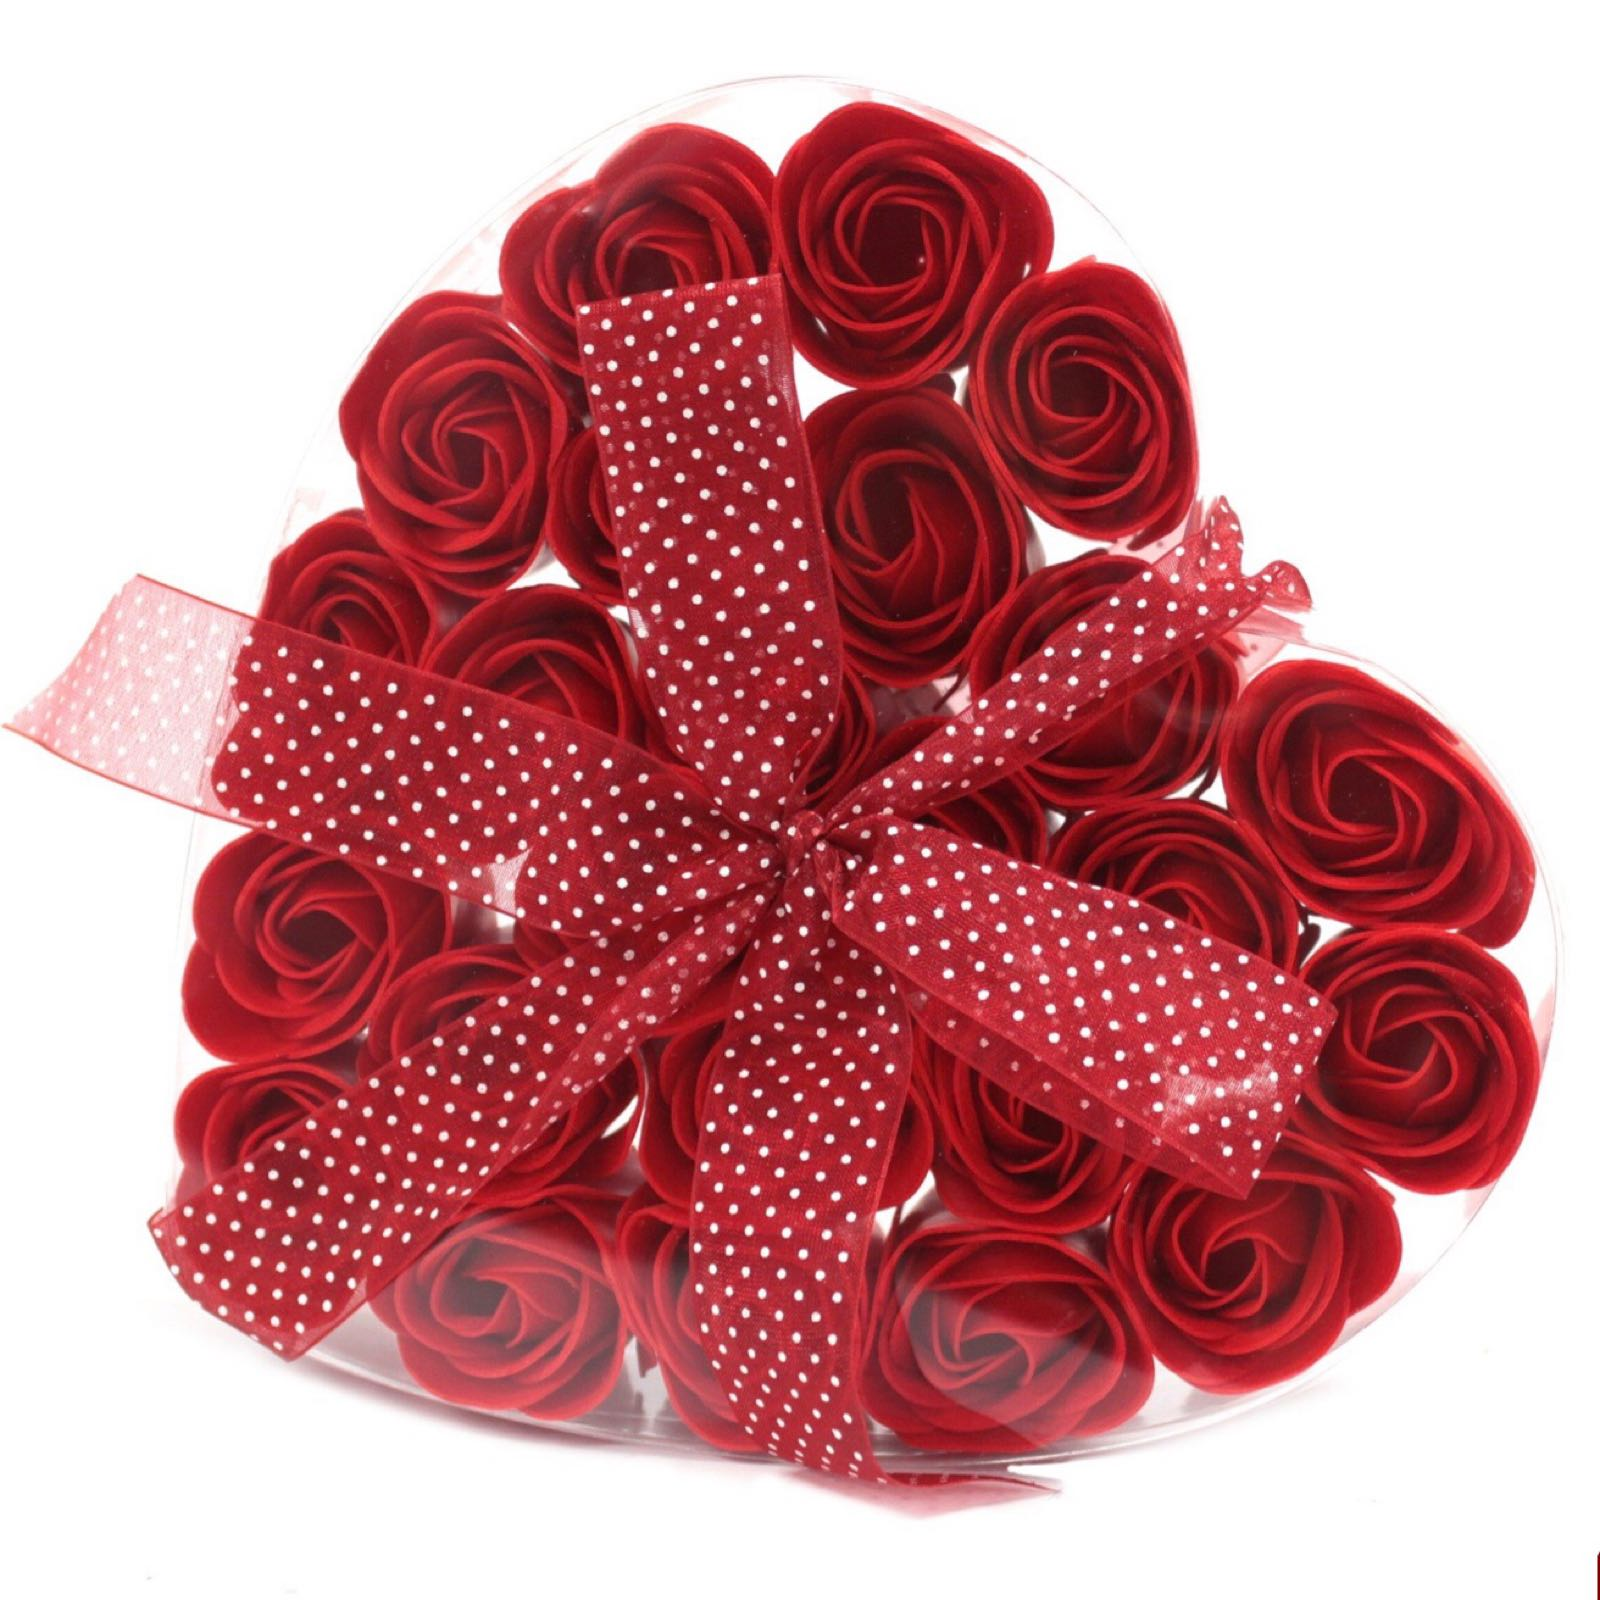 Soap Flower Heart Box - Red Roses (Was £8.50)